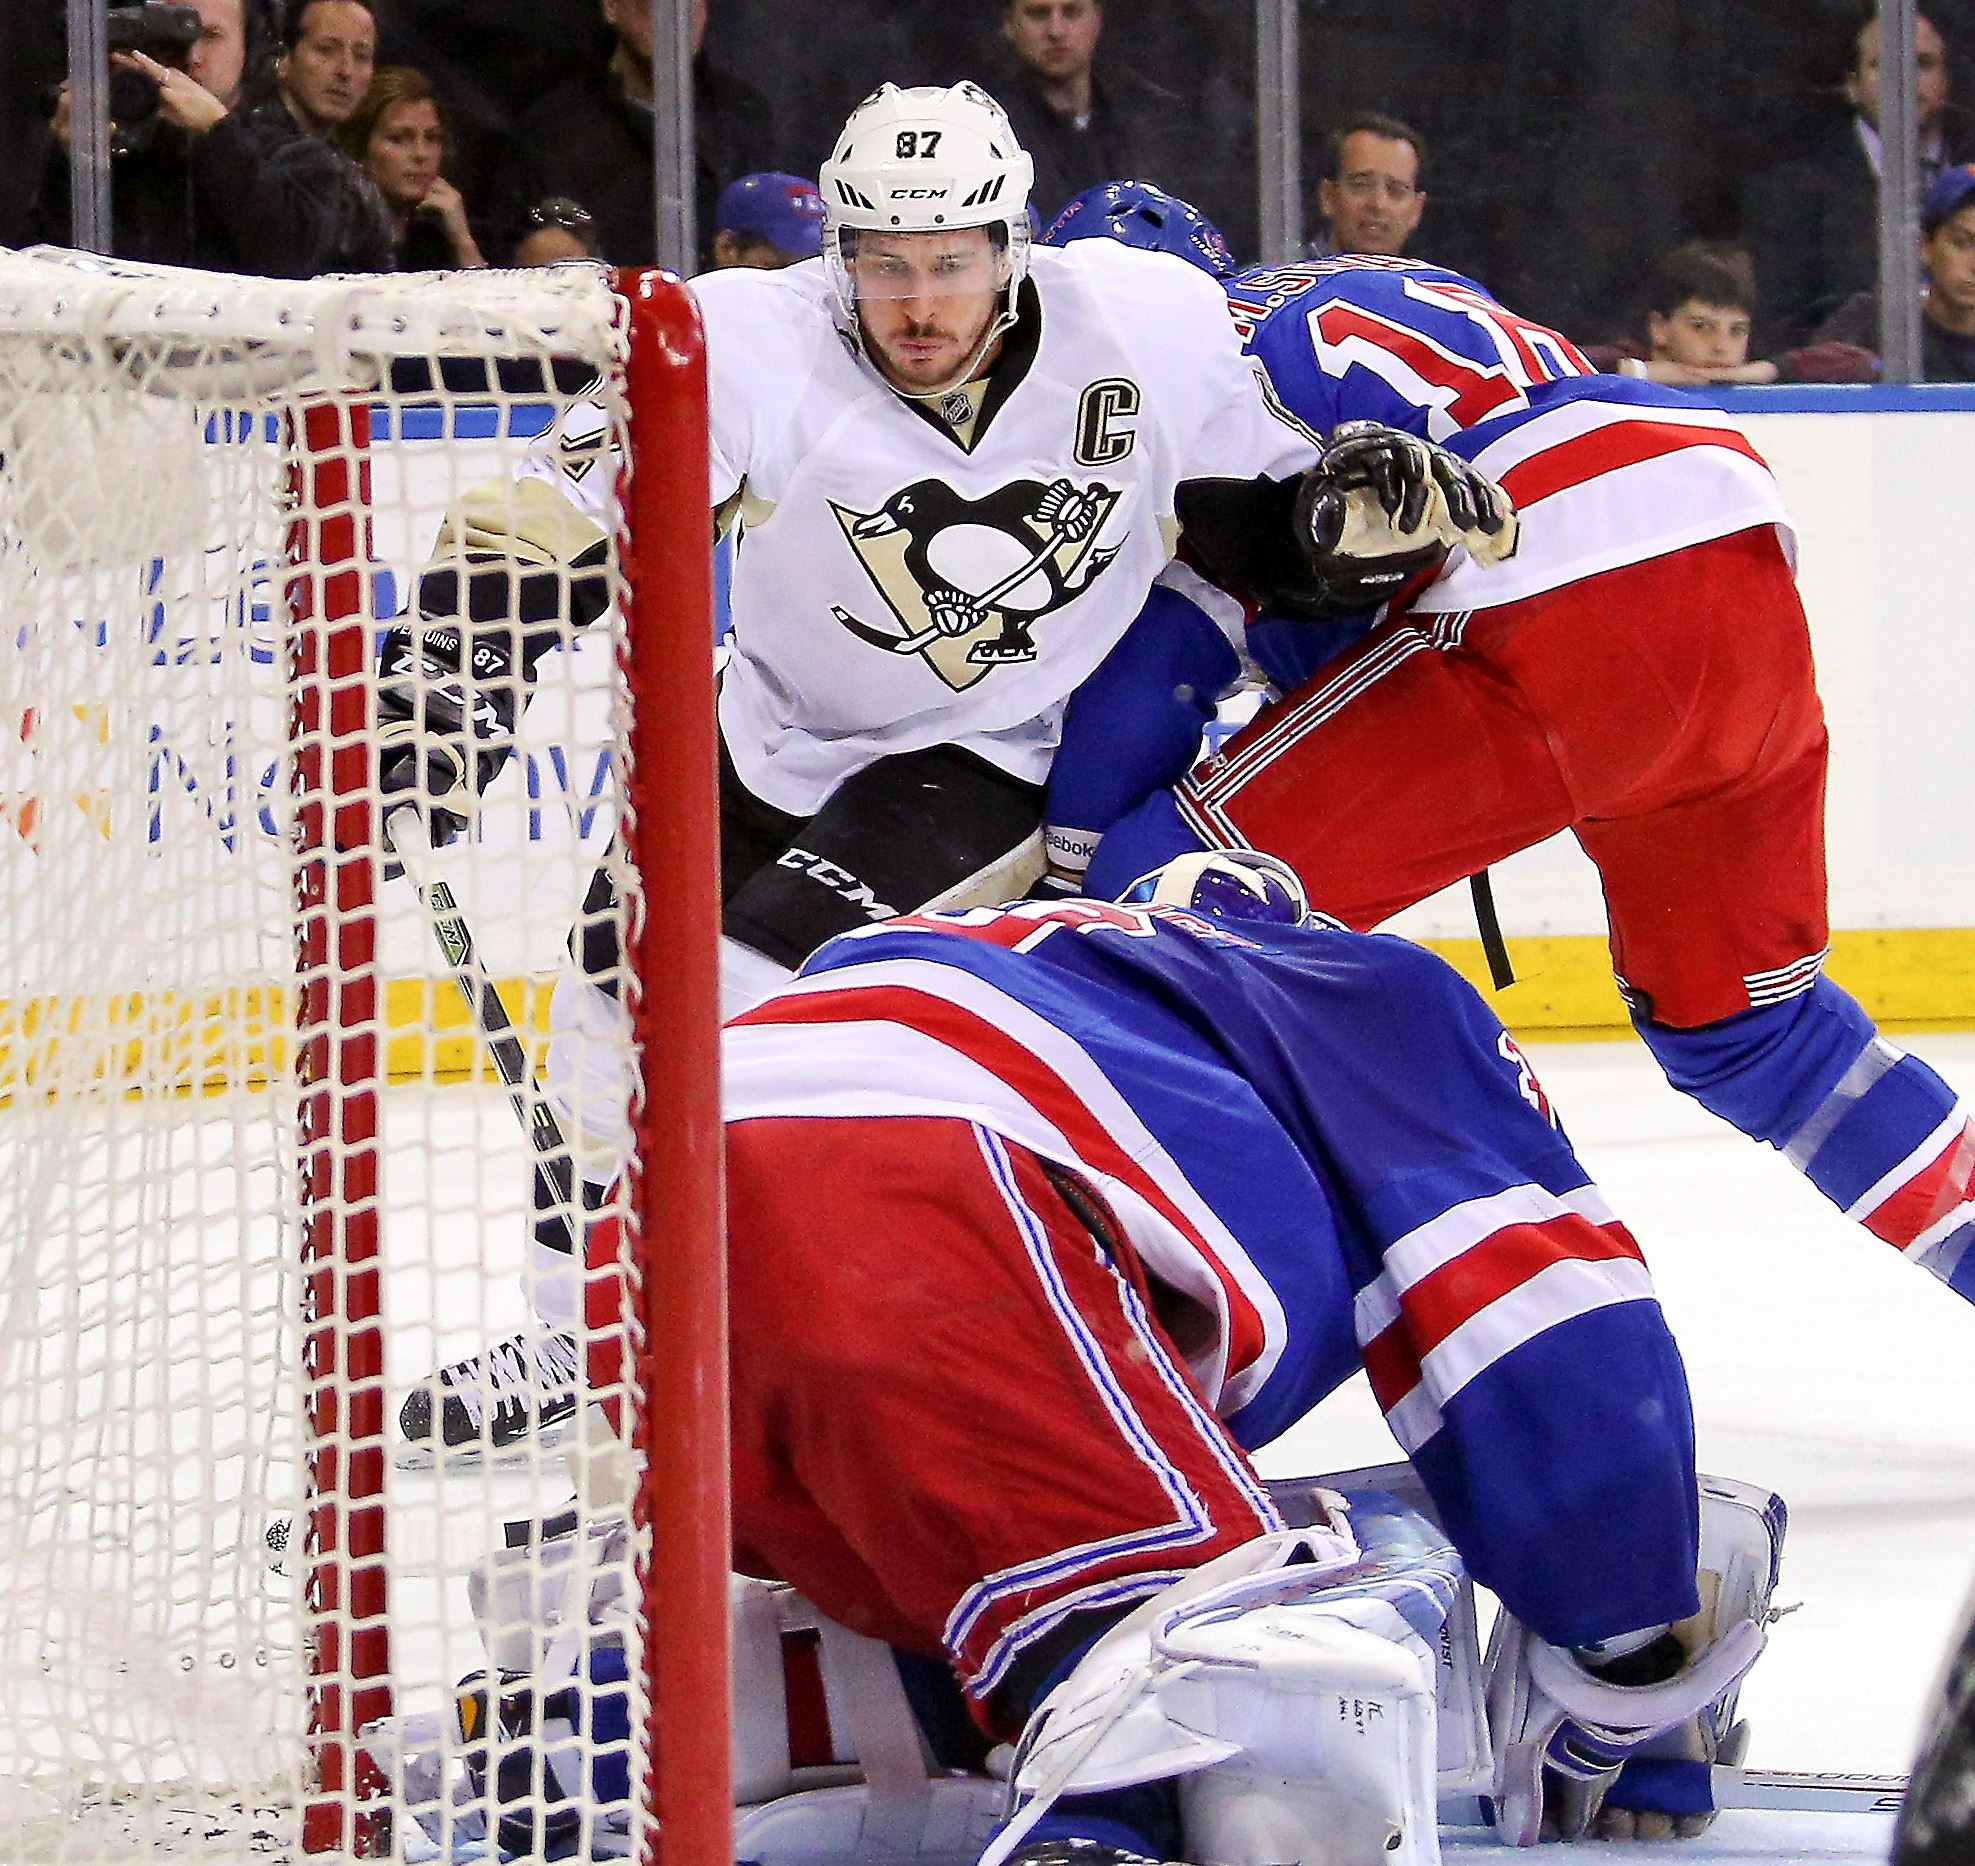 Ron Cook: Crosby is living up to his star status